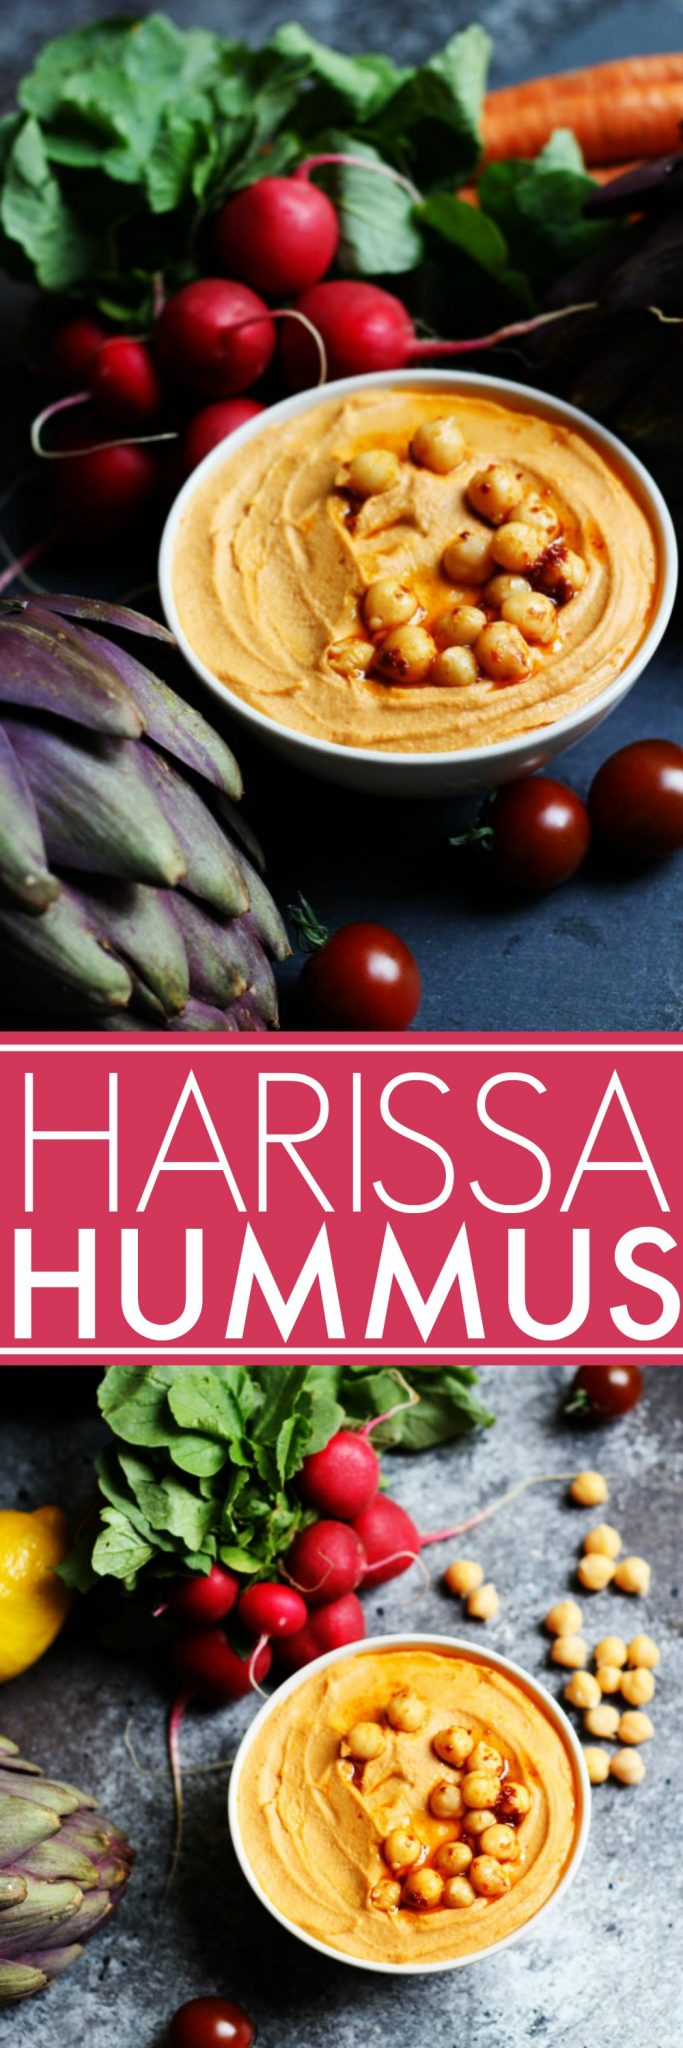 This Harissa Hummus will have you hooked with its spicy, smoky, and wonderfully aromatic flavor. | platingsandpairings.com